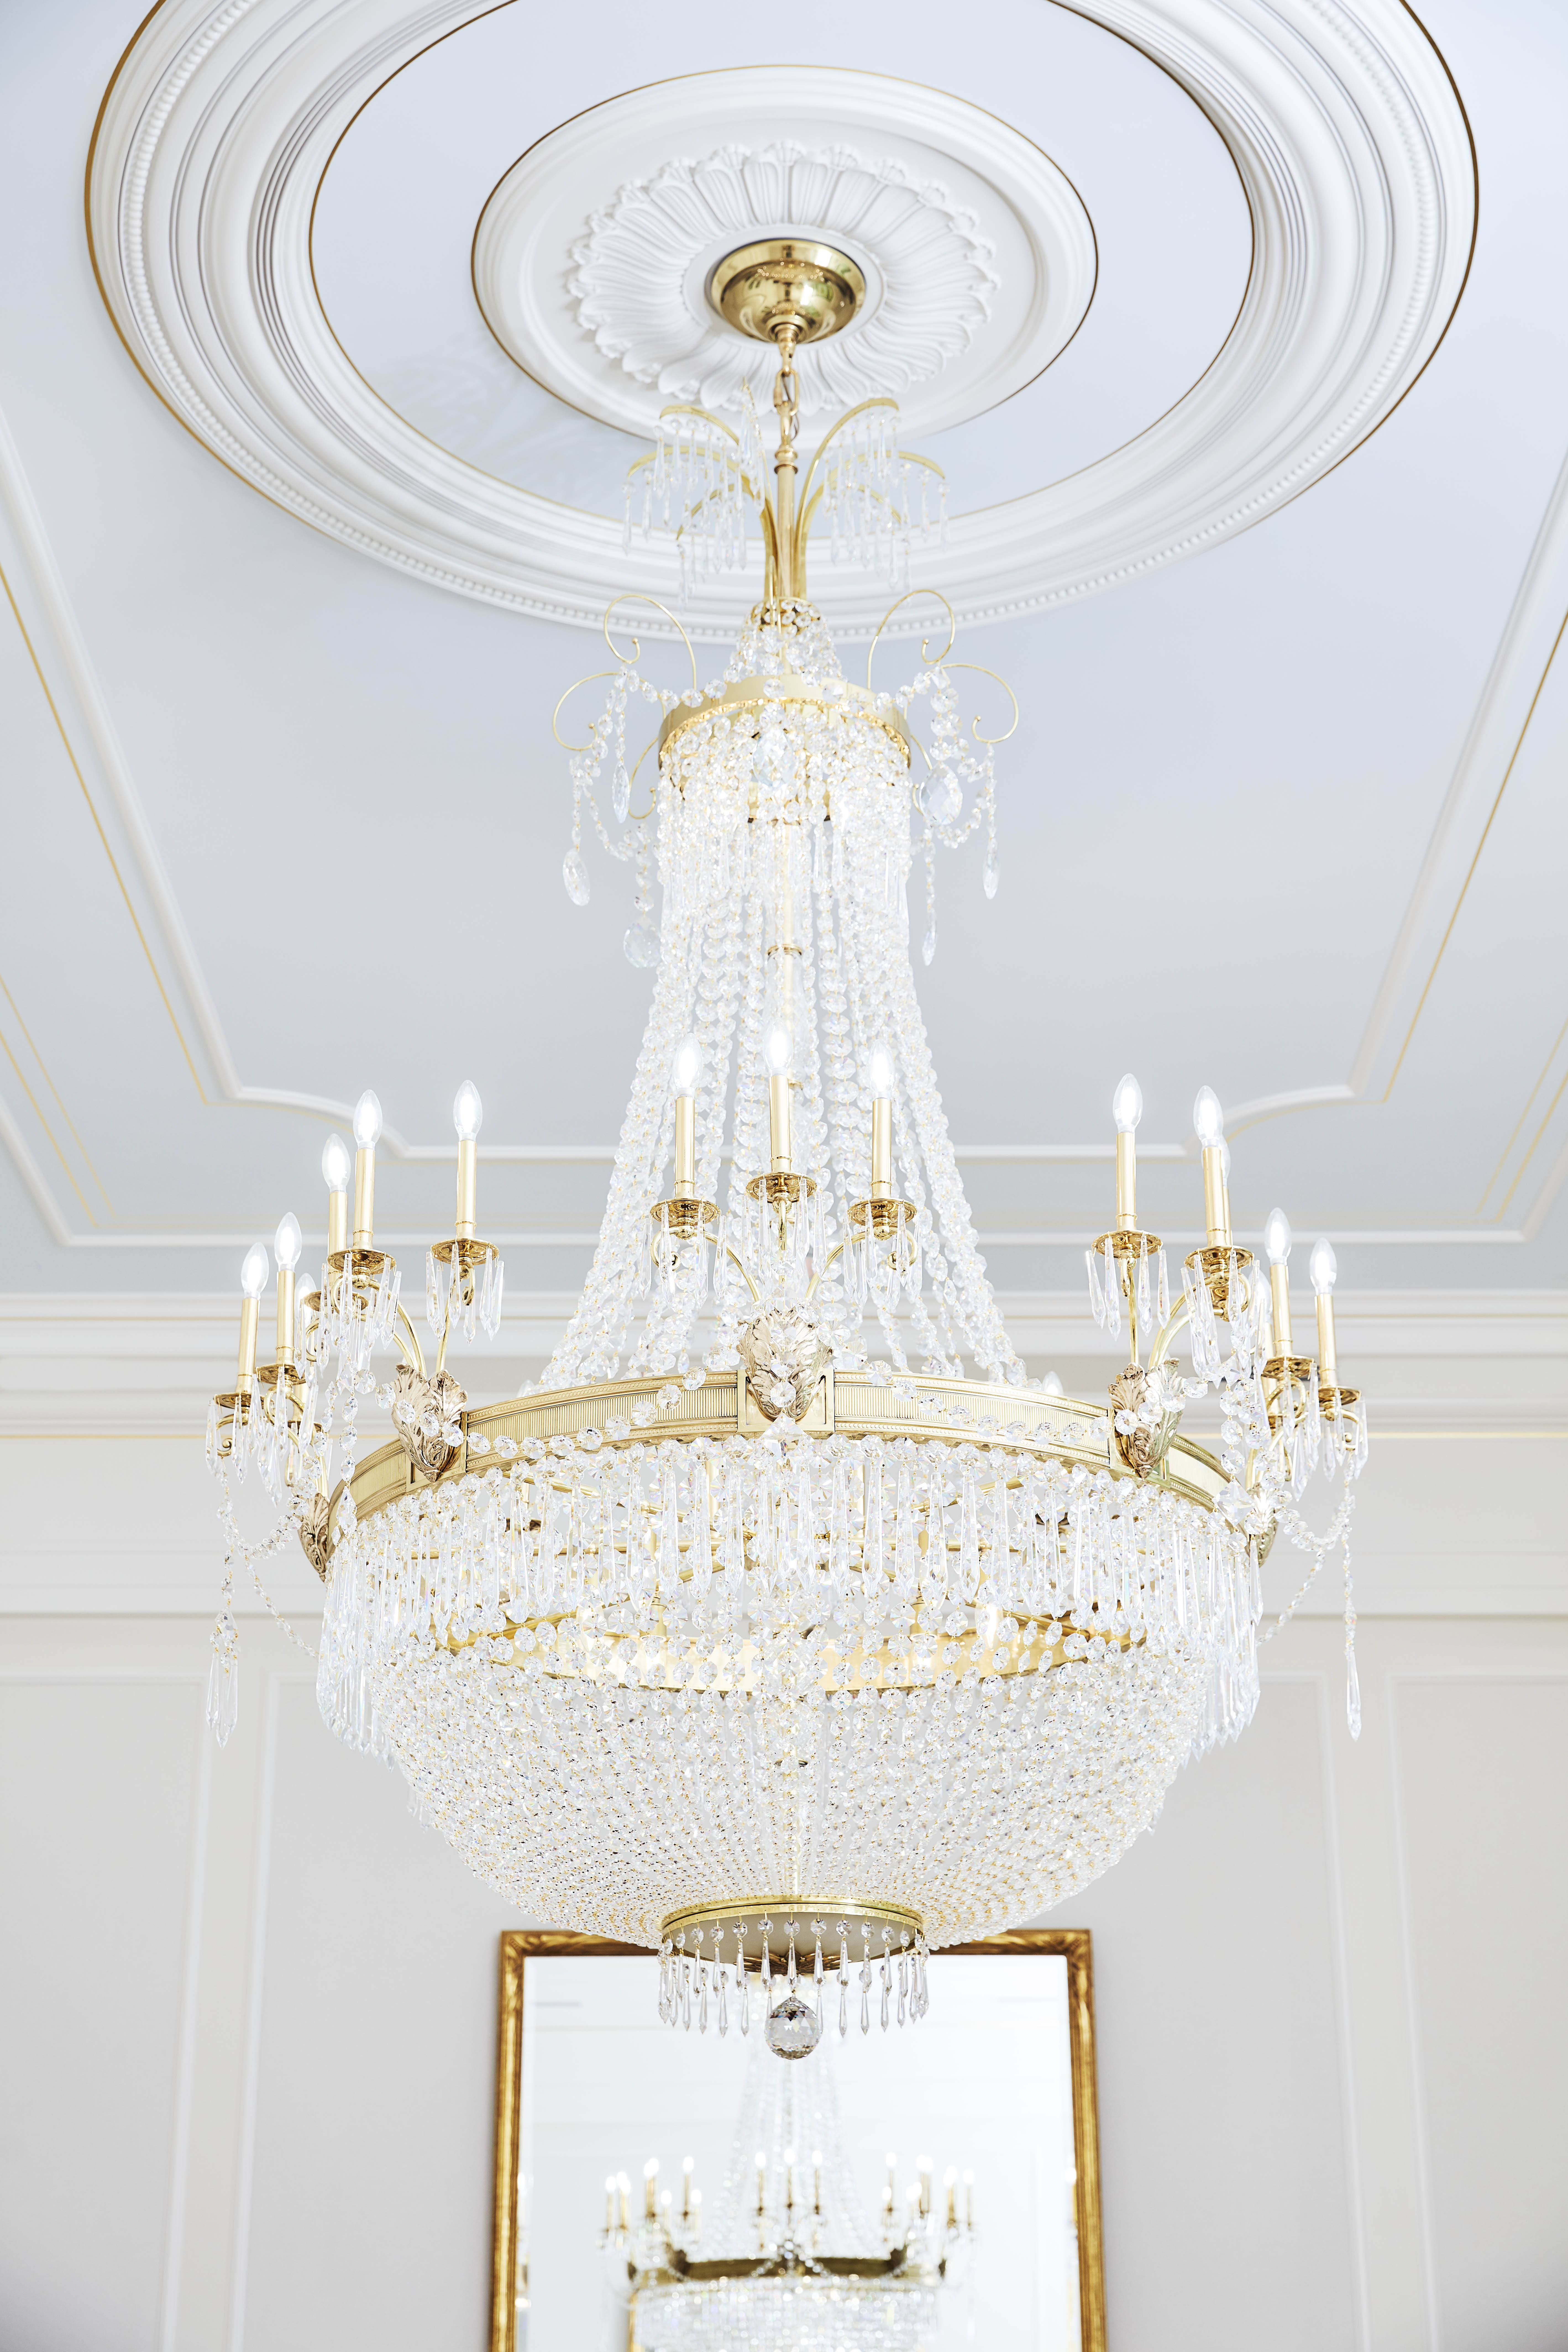 A chandelier in the celestial room of the Memphis Tennessee Temple.